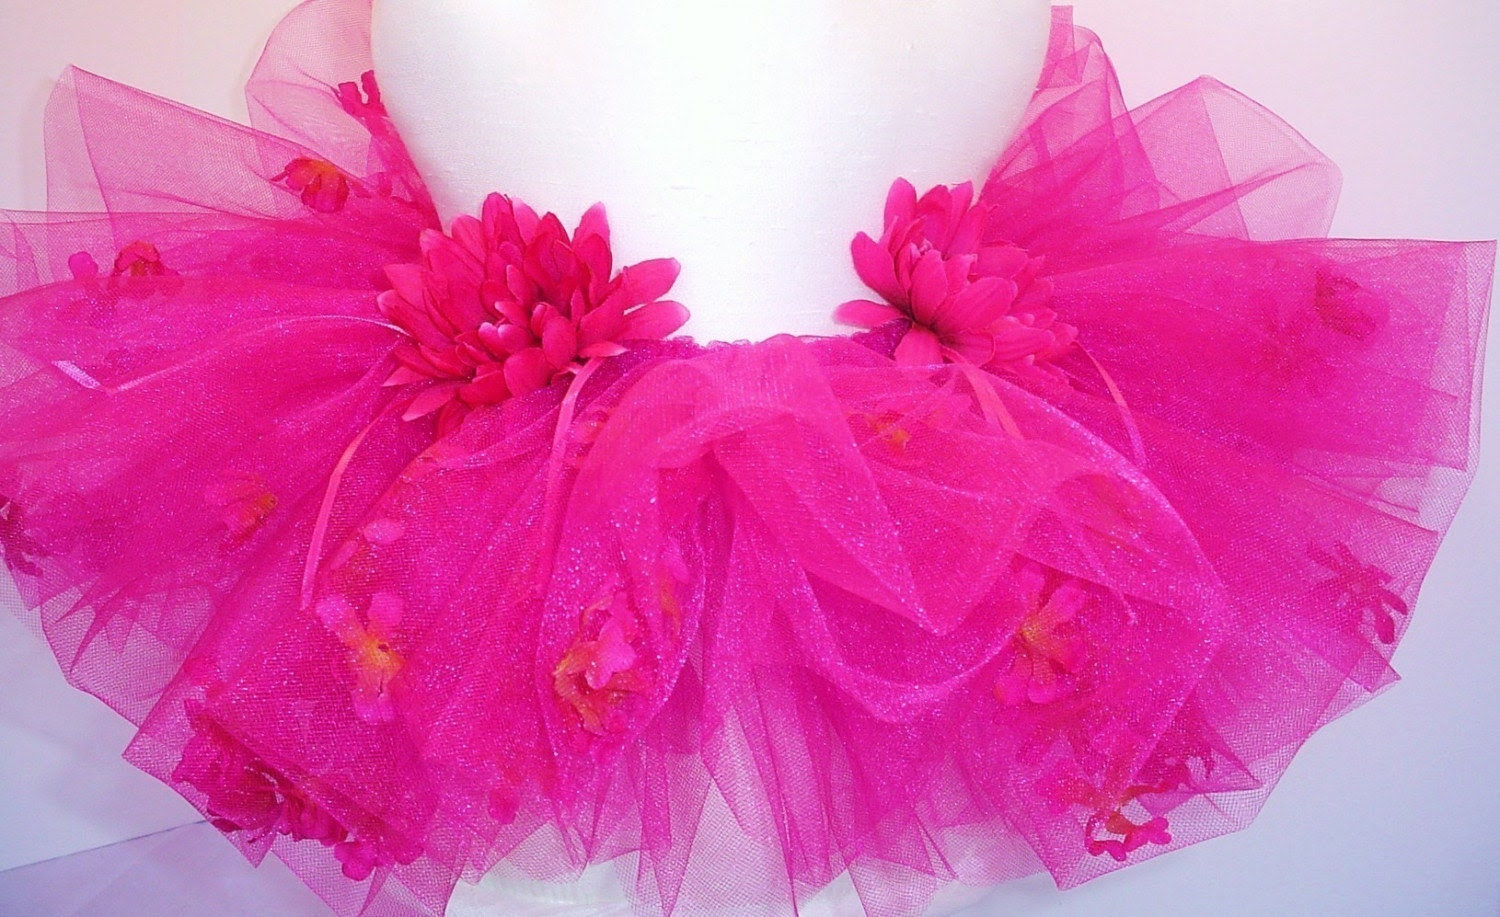 Prima Tutu Sprinkled With Flower Petals - Frisky Fuchsia